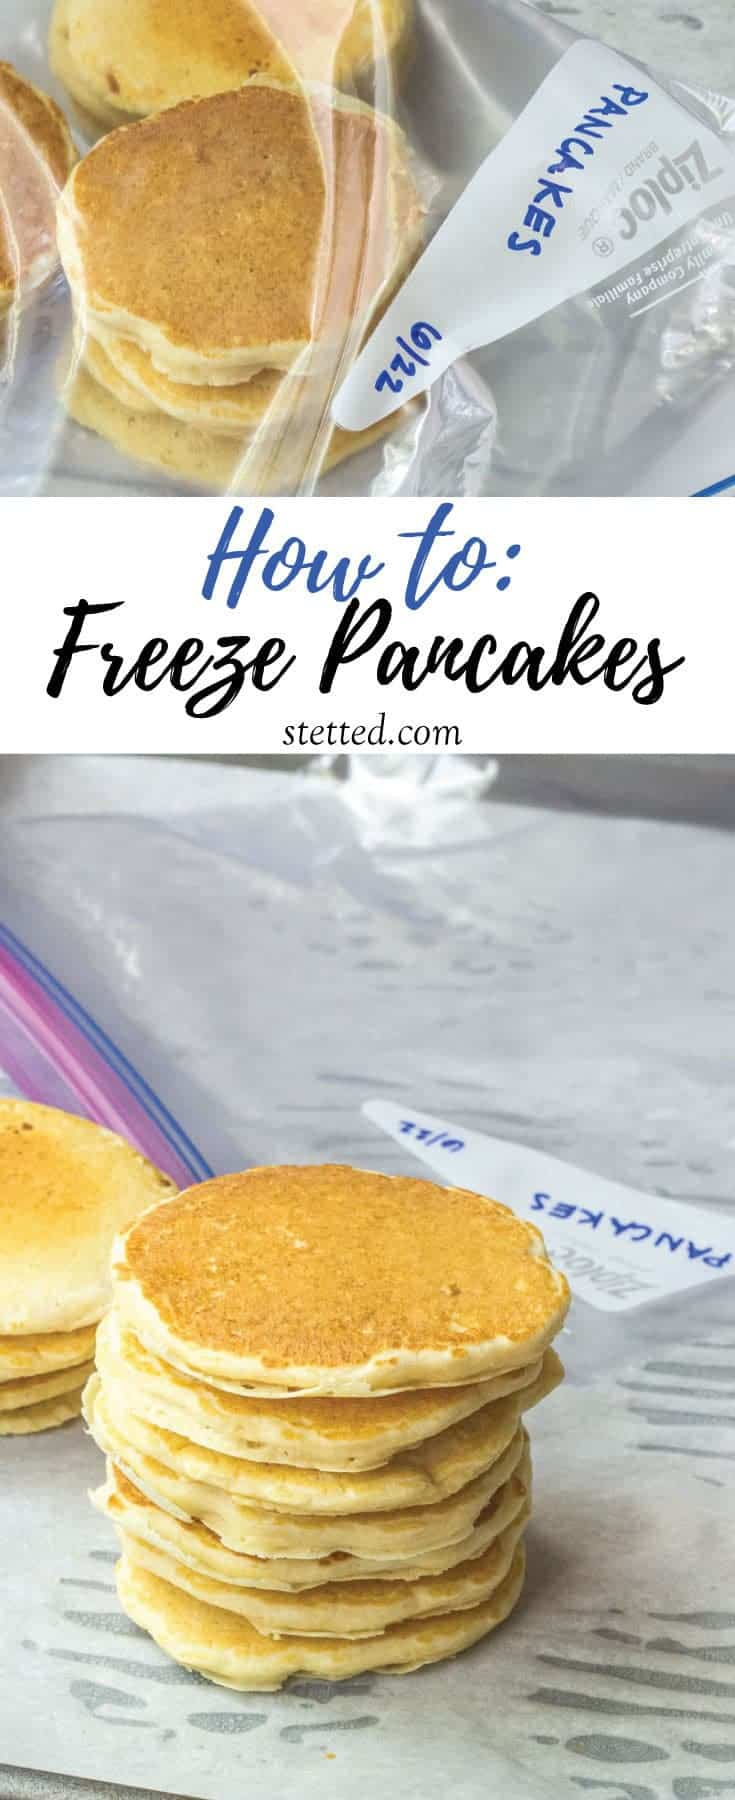 Learn how to freeze pancakes and keep a homemade breakfast at the ready! They reheat in seconds for a quick and easy meal.